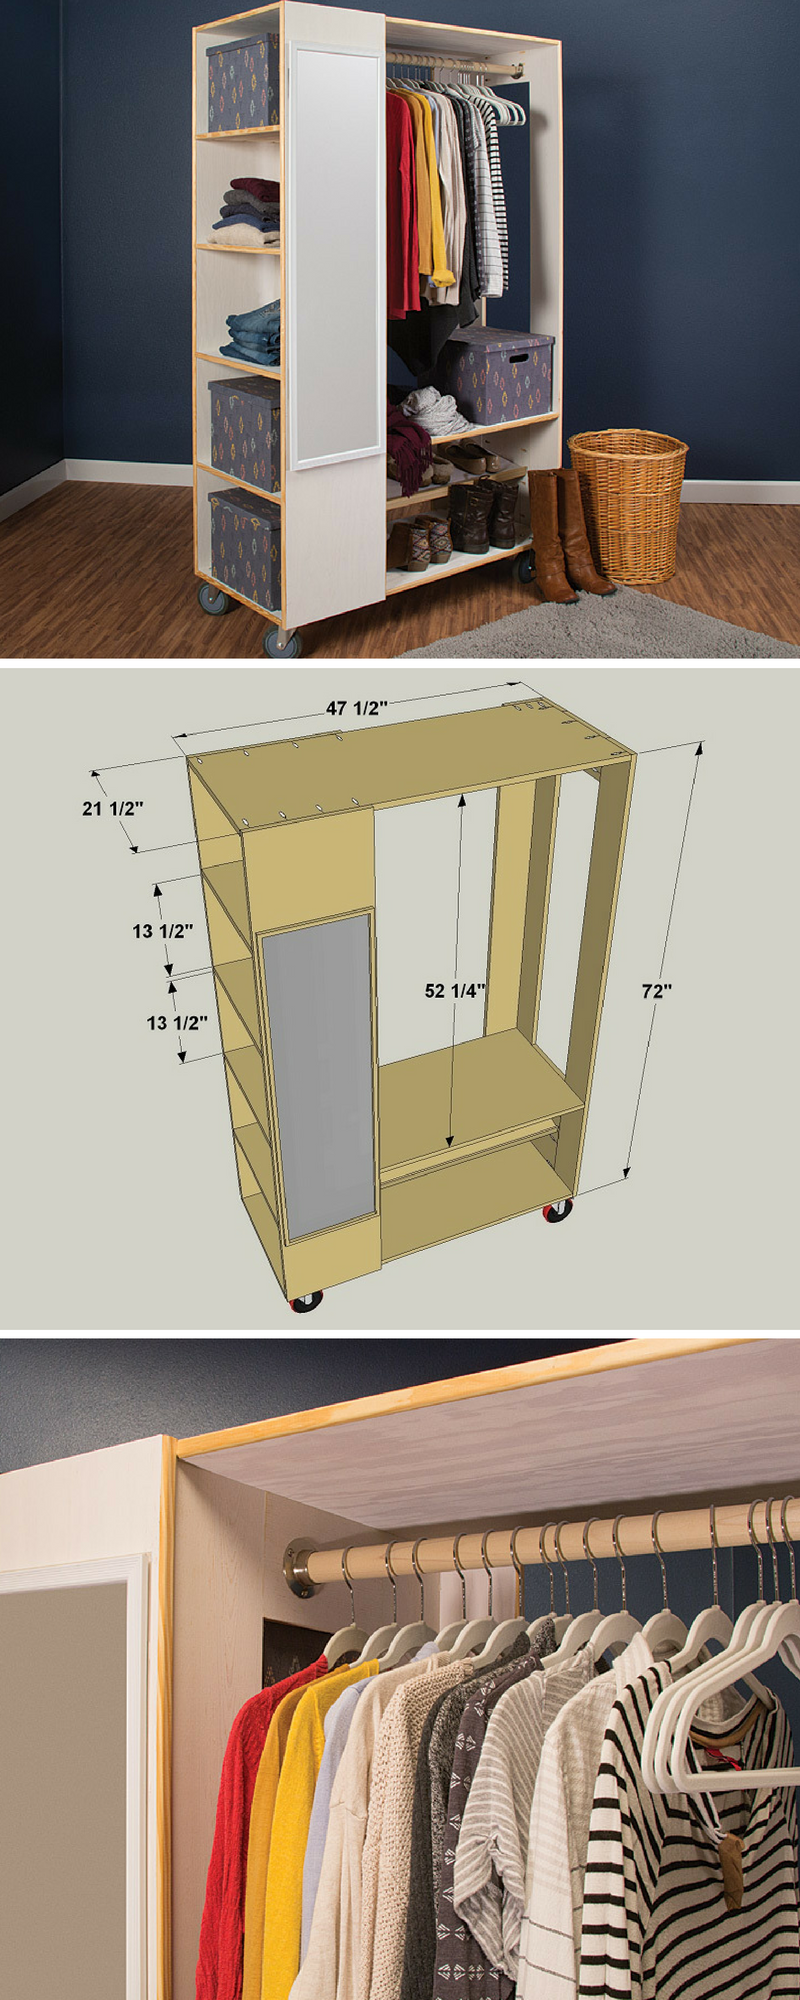 How To Build A DIY Freestanding Closet System | Free Project Plans On  Buildsomething.com | Closets Are Kind Of Like Potato Chips.